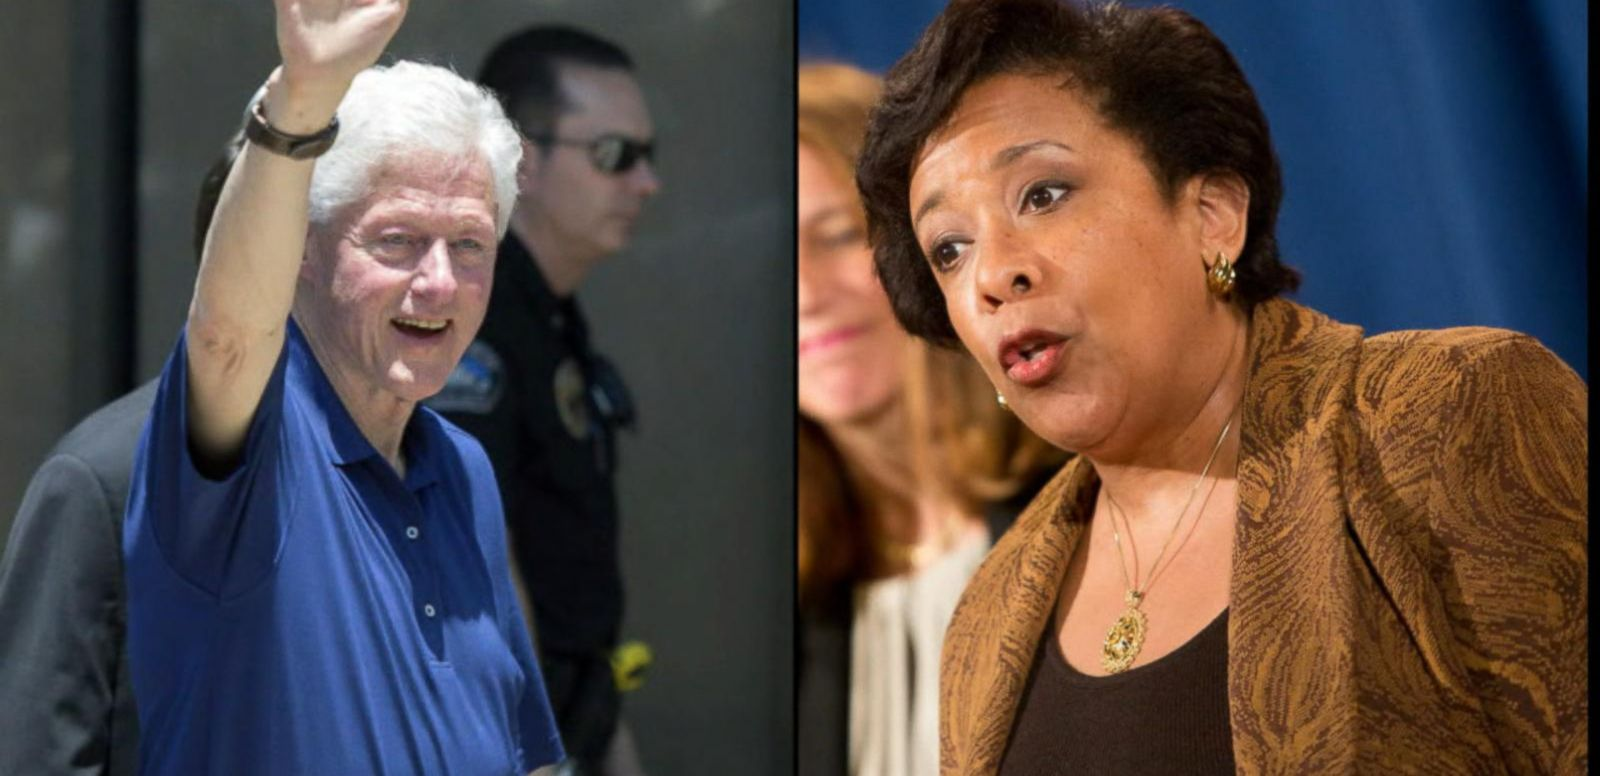 VIDEO: Bill Clinton Under Attack for Meeting with US Attorney General